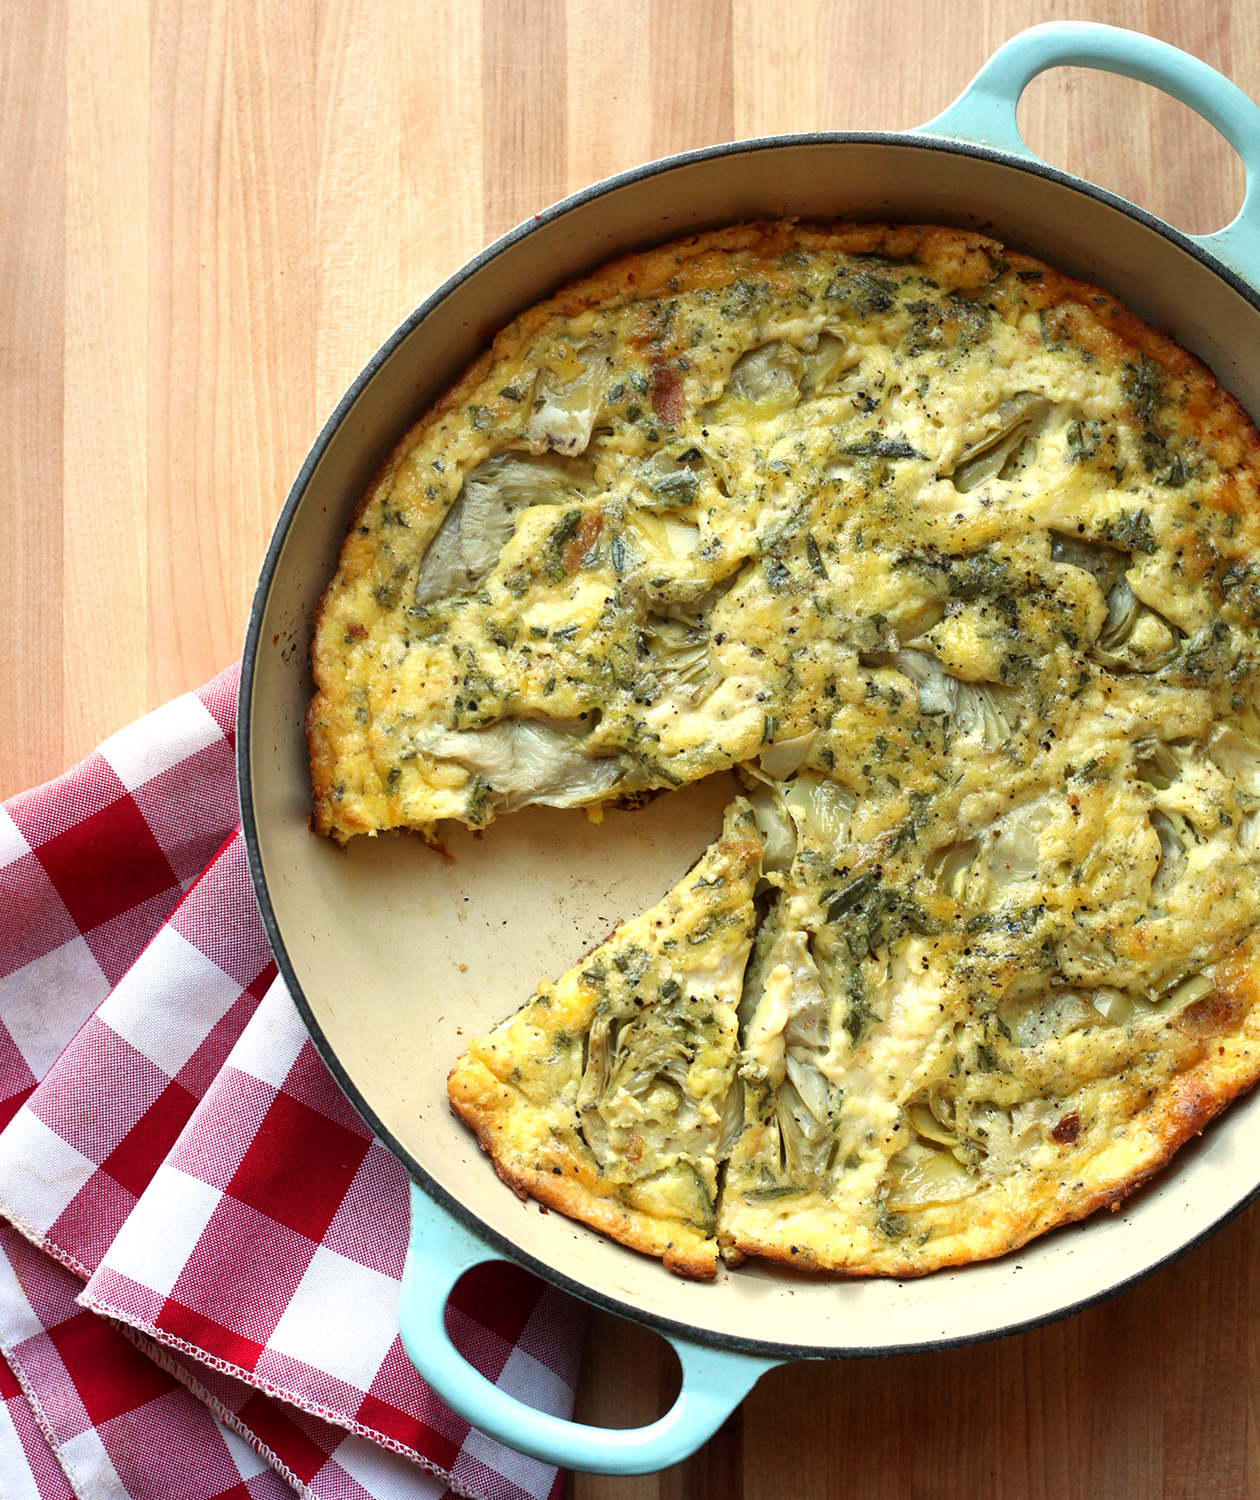 Artichoke, Rosemary, and Garlic Frittata